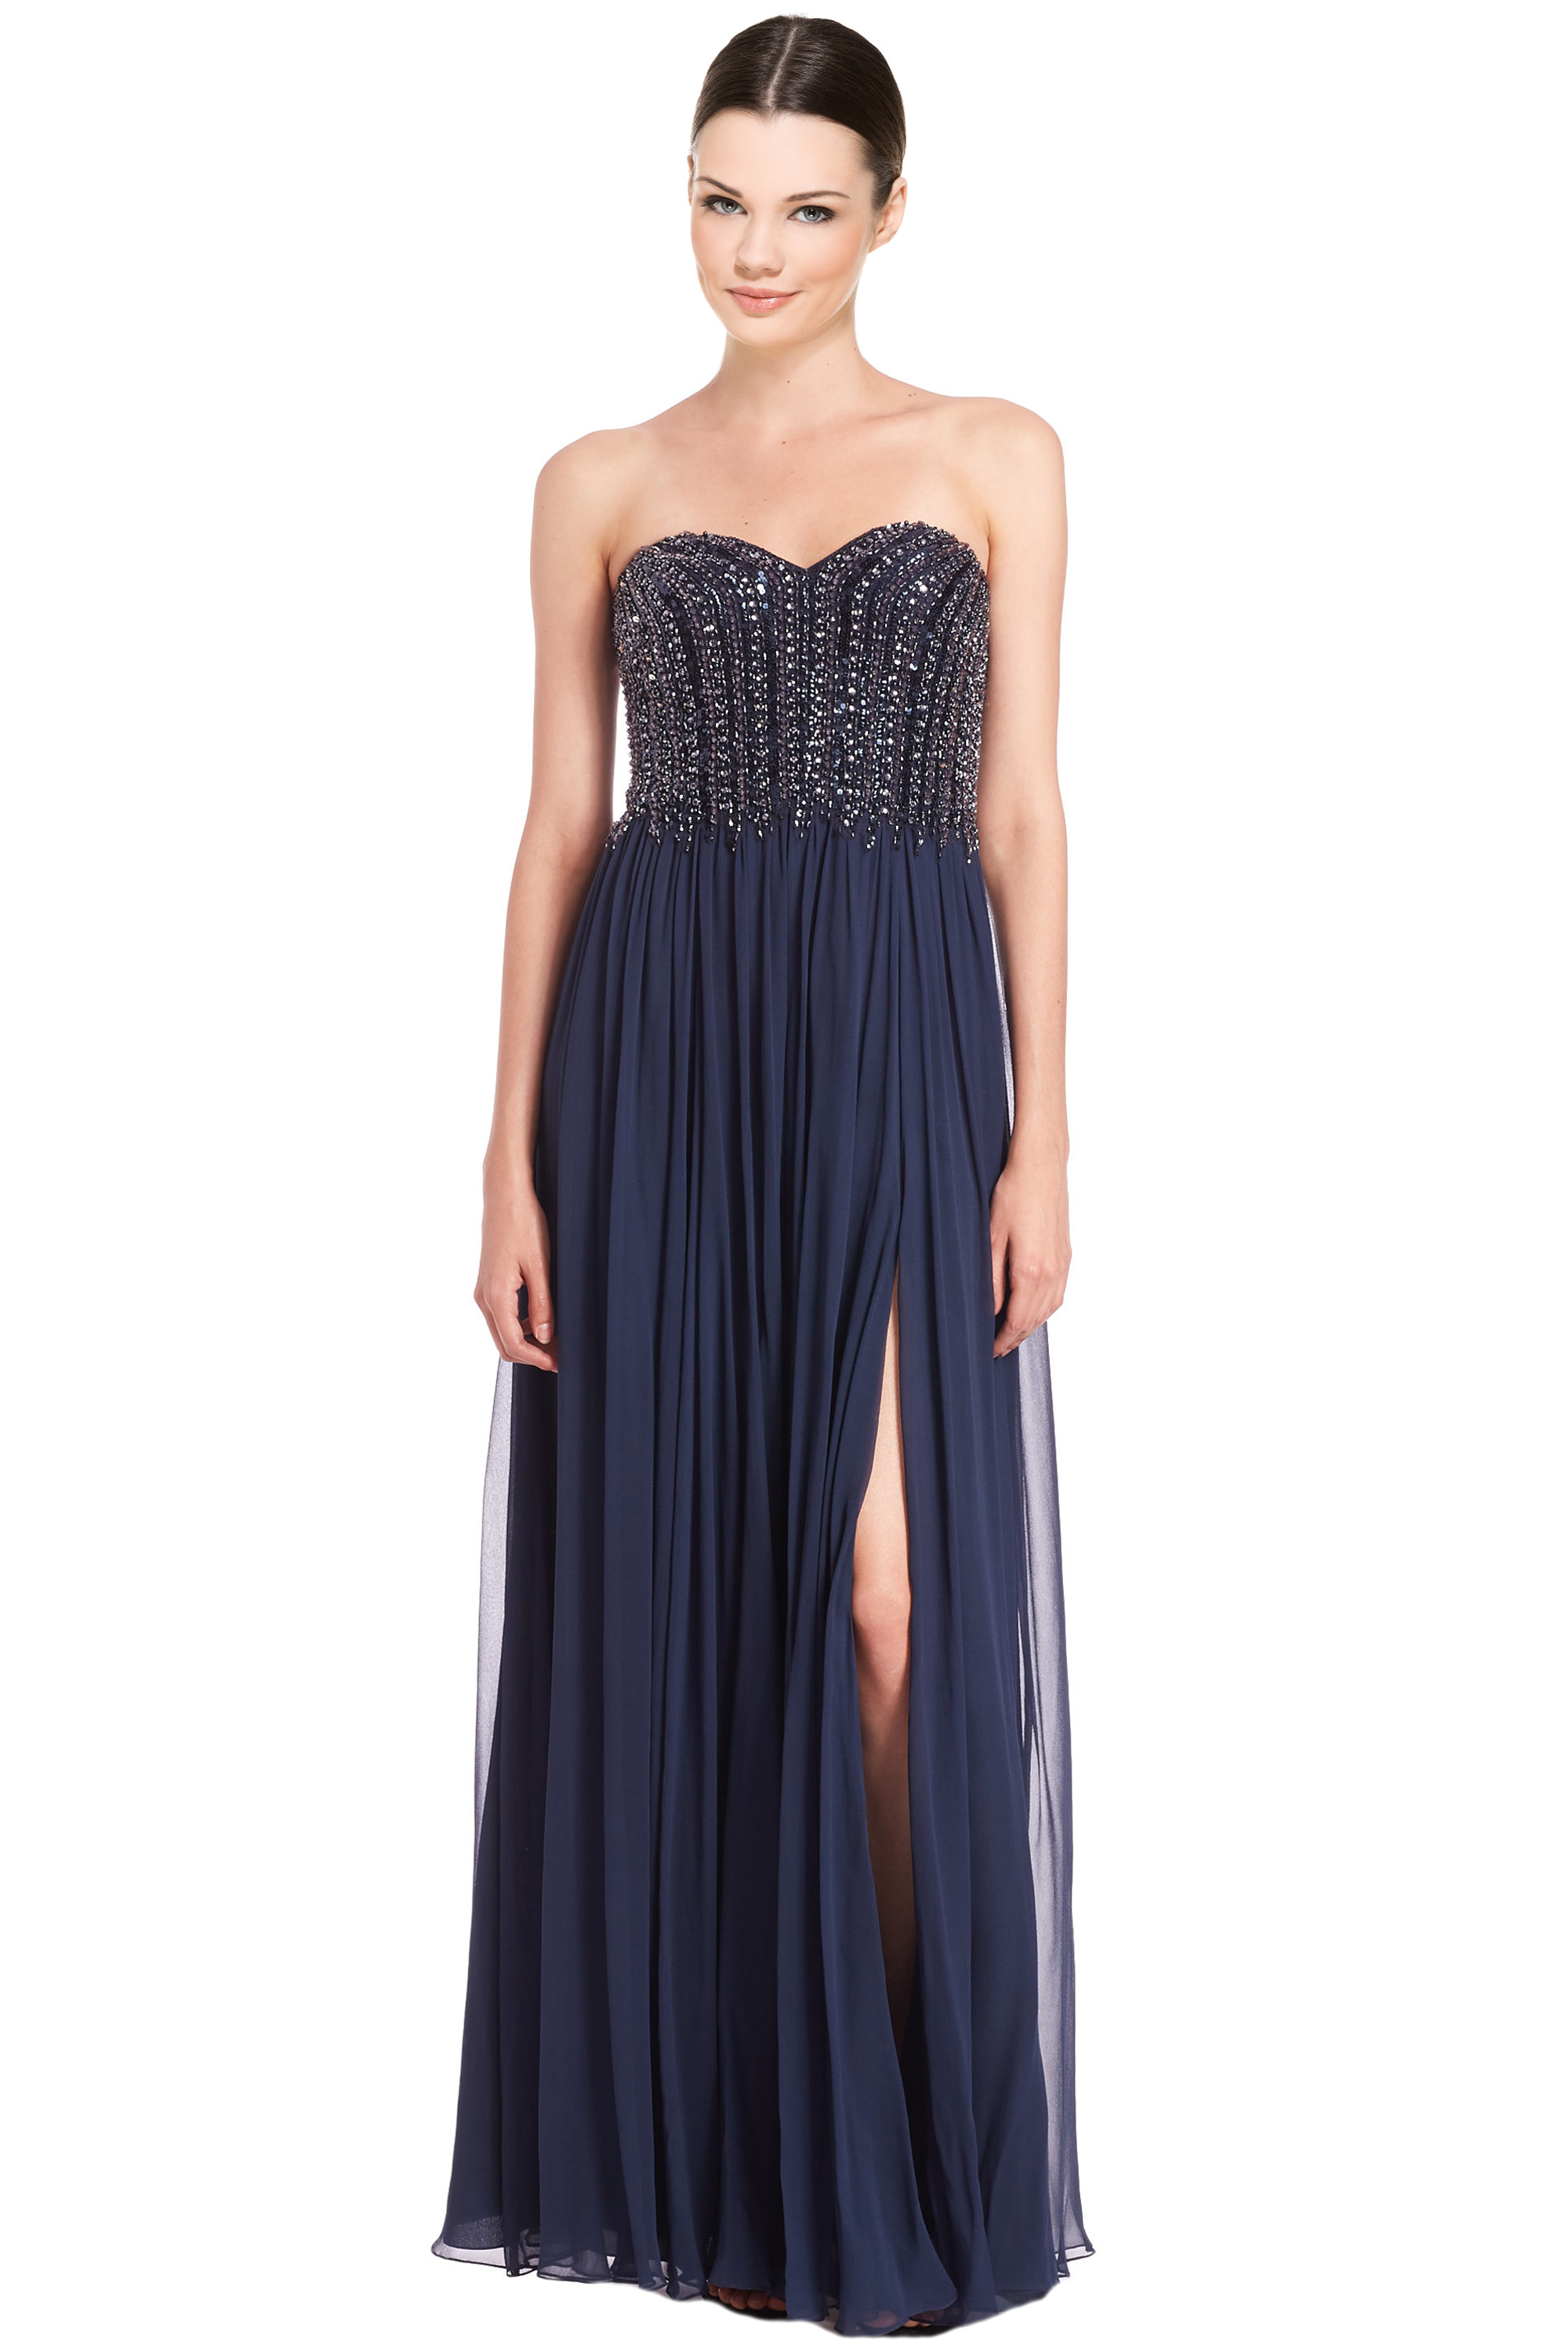 David Meister Navy Blue Strapless Beaded Bodice Chiffon Evening Gown ...